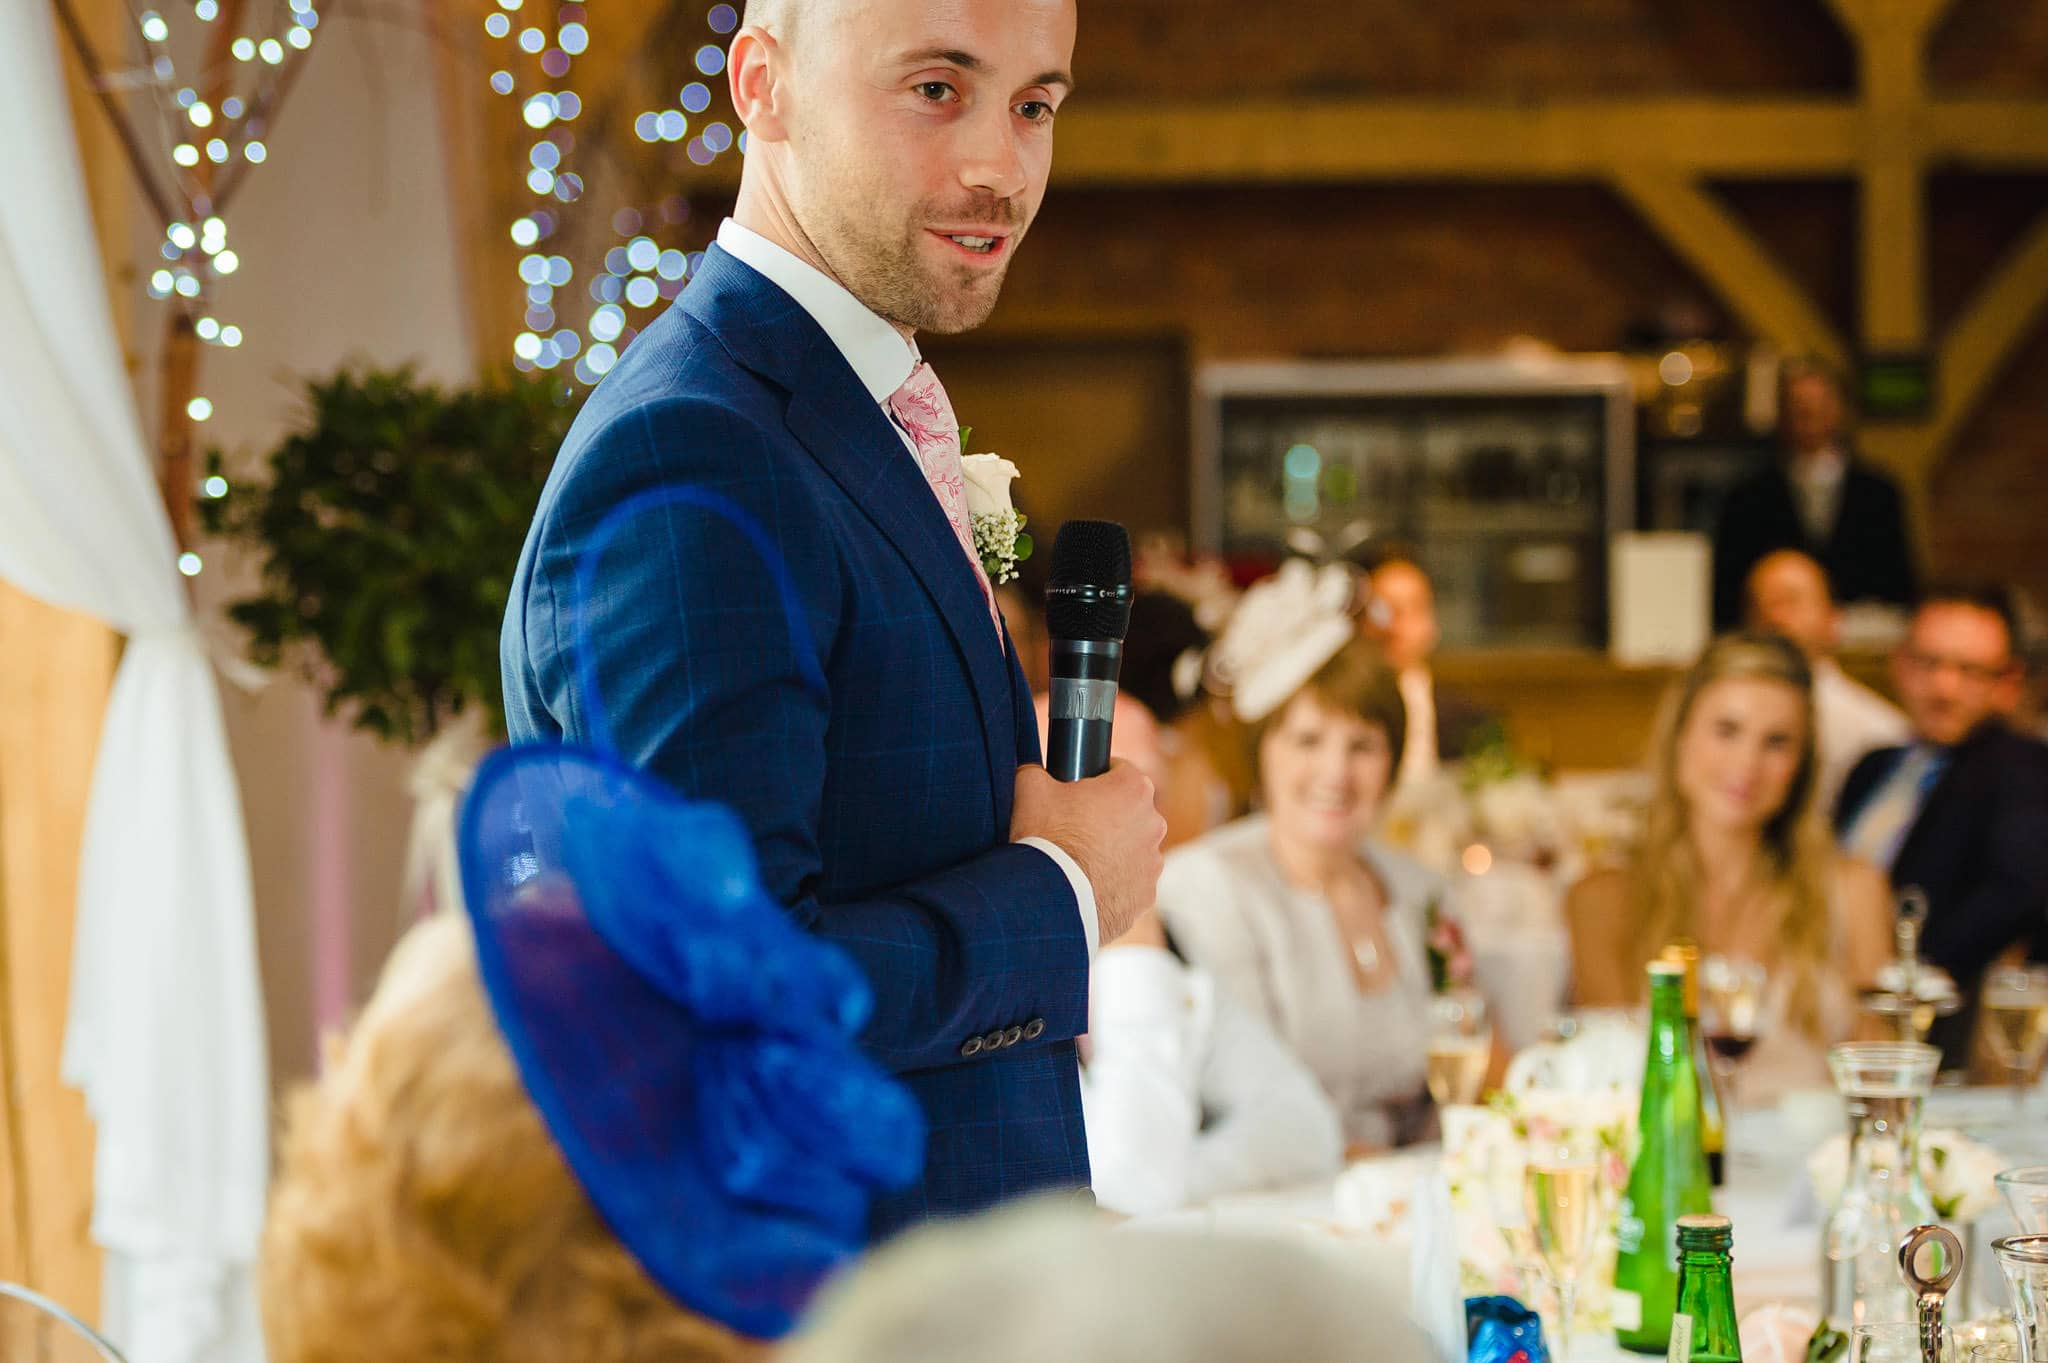 Wedding at Redhouse Barn in Stoke Prior, Worcestershire 134